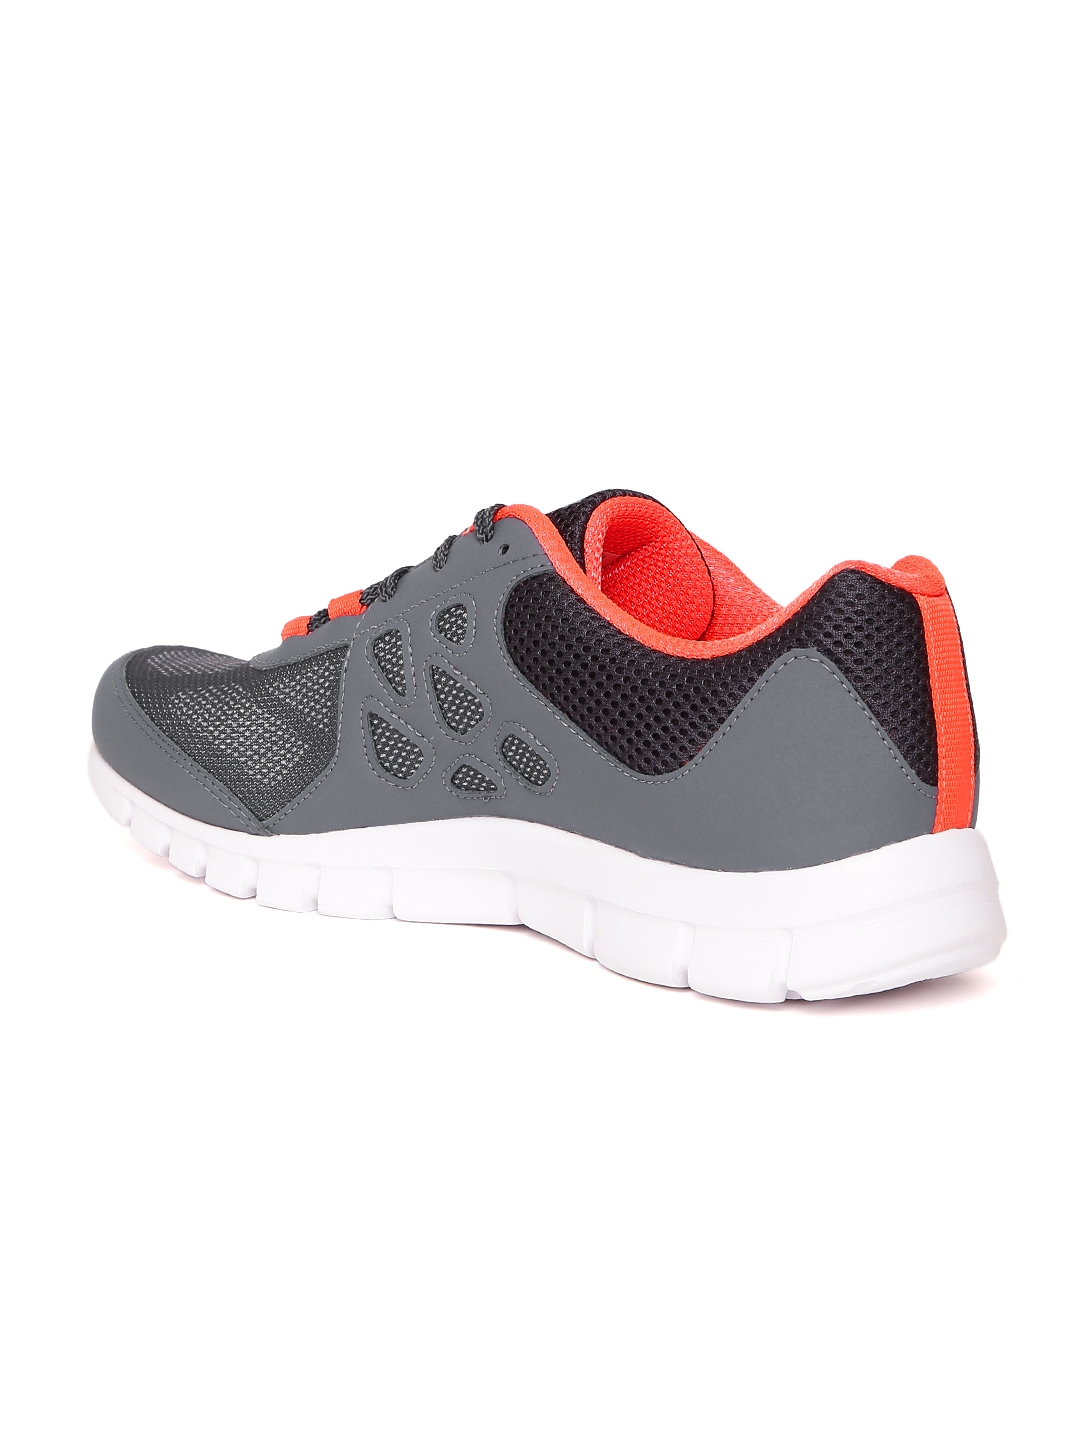 3be8669a7d25ef Buy Reebok Men Grey SPRINT AFFECT XTREME Running Shoes - Sports ...